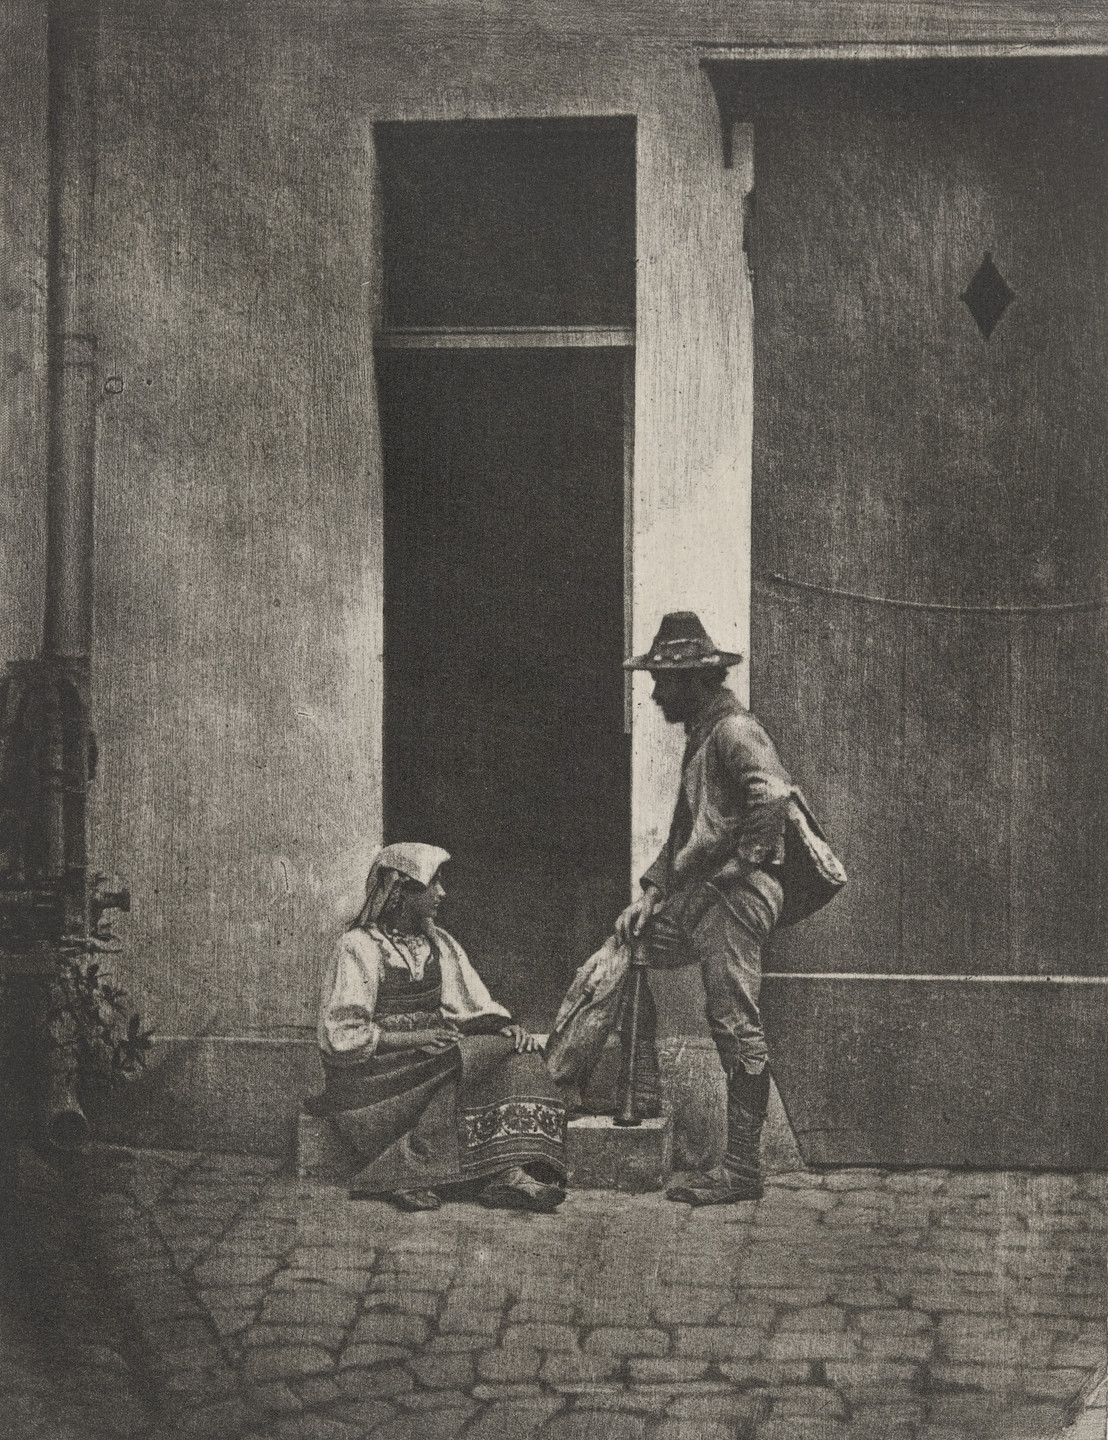 Charles Nègre. Standing Bag Piper and Seated Italiam Peasant Woman, at the Corner of 21 Quai Bourbon. 1855